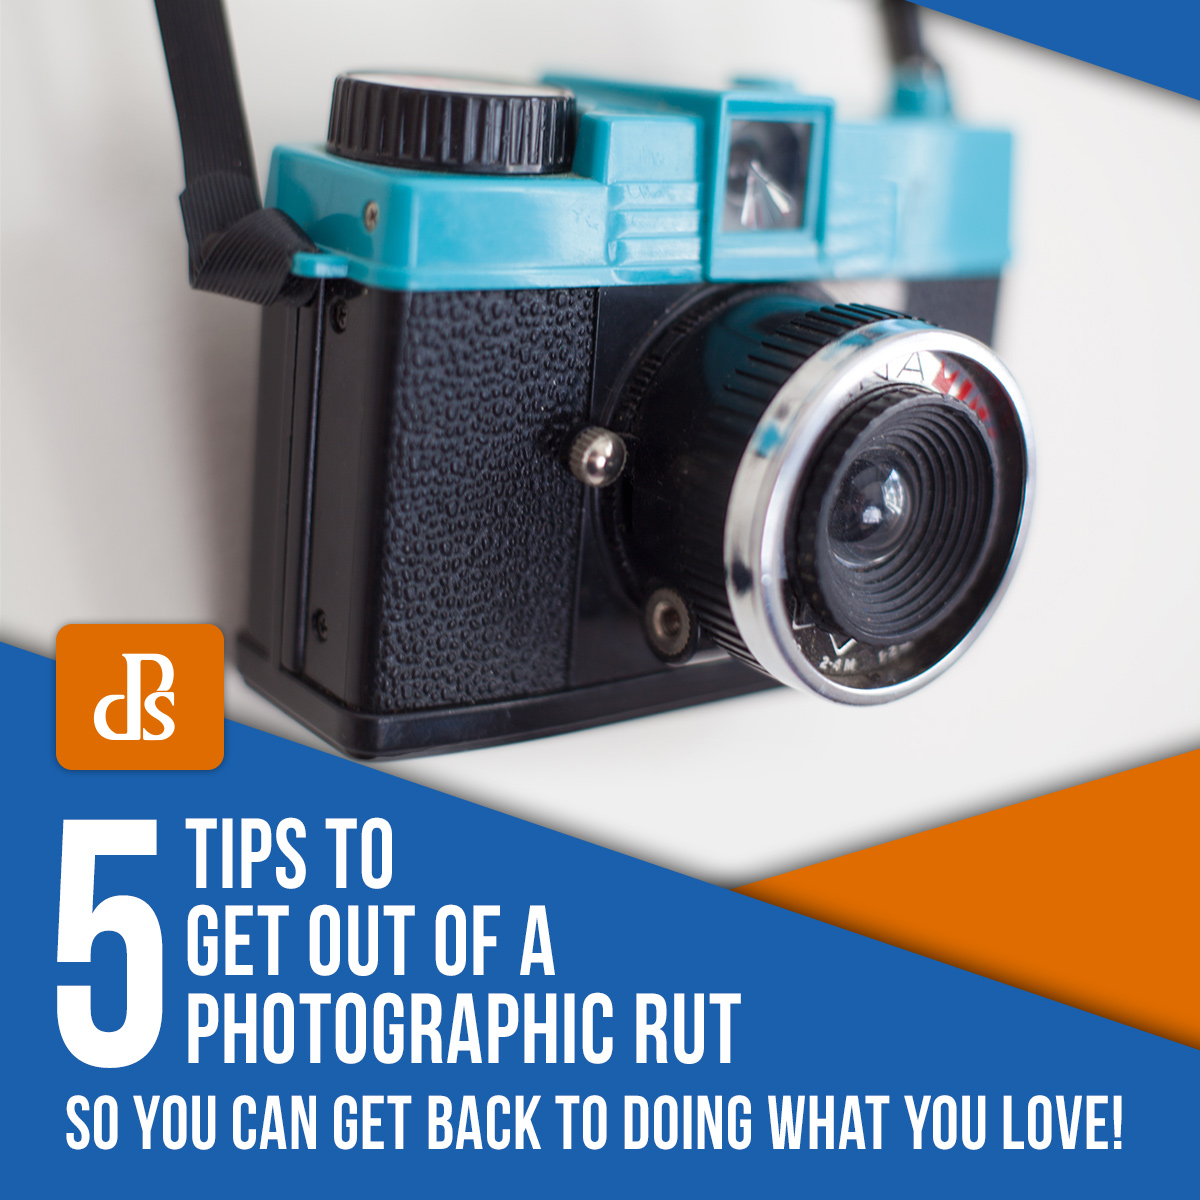 tips-to-get-out-of-a-photographic-rut